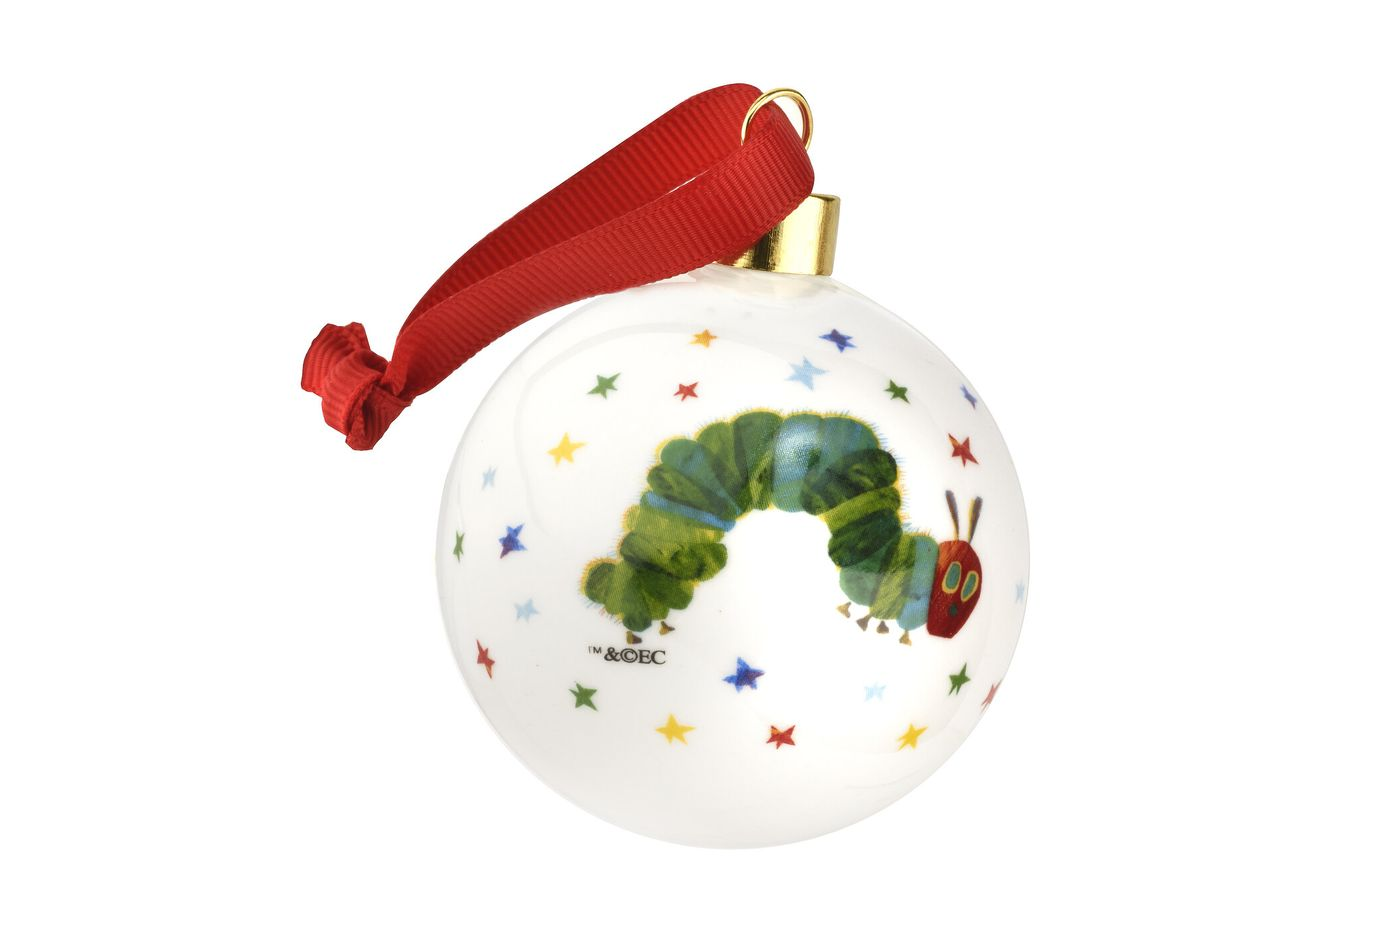 Portmeirion The Very Hungry Caterpillar by Eric Carle Bauble Baby 1st Xmas thumb 4